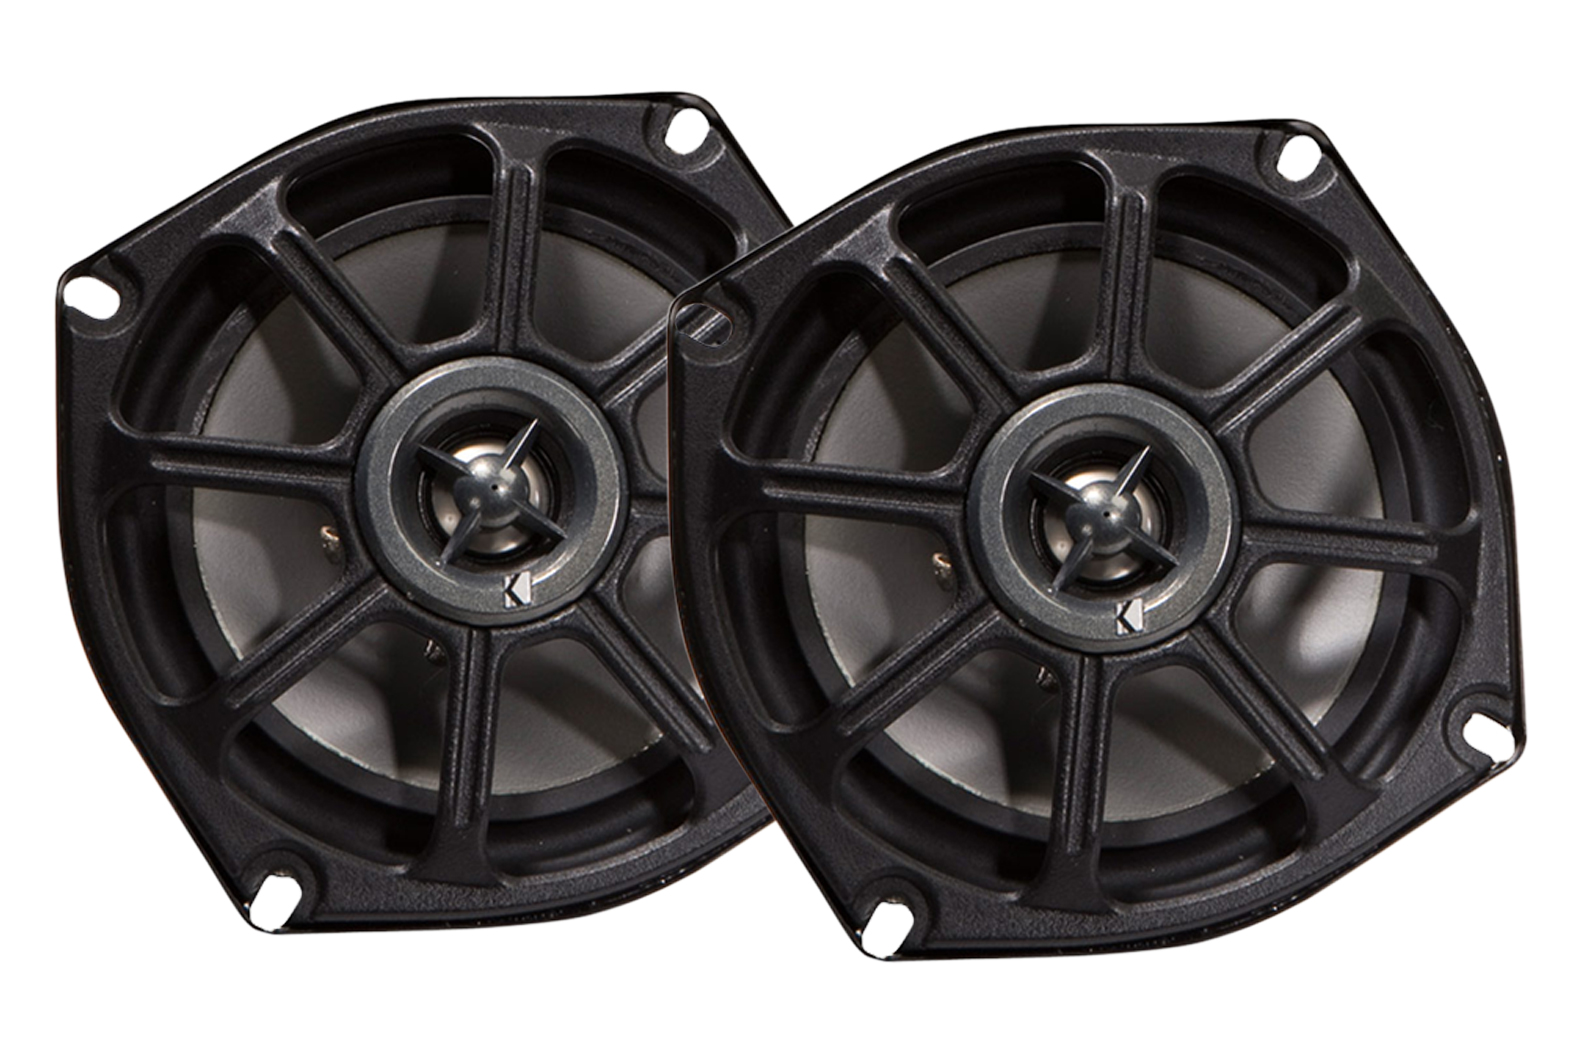 Kicker Powersports Speakers THE PERFECT SOLUTION